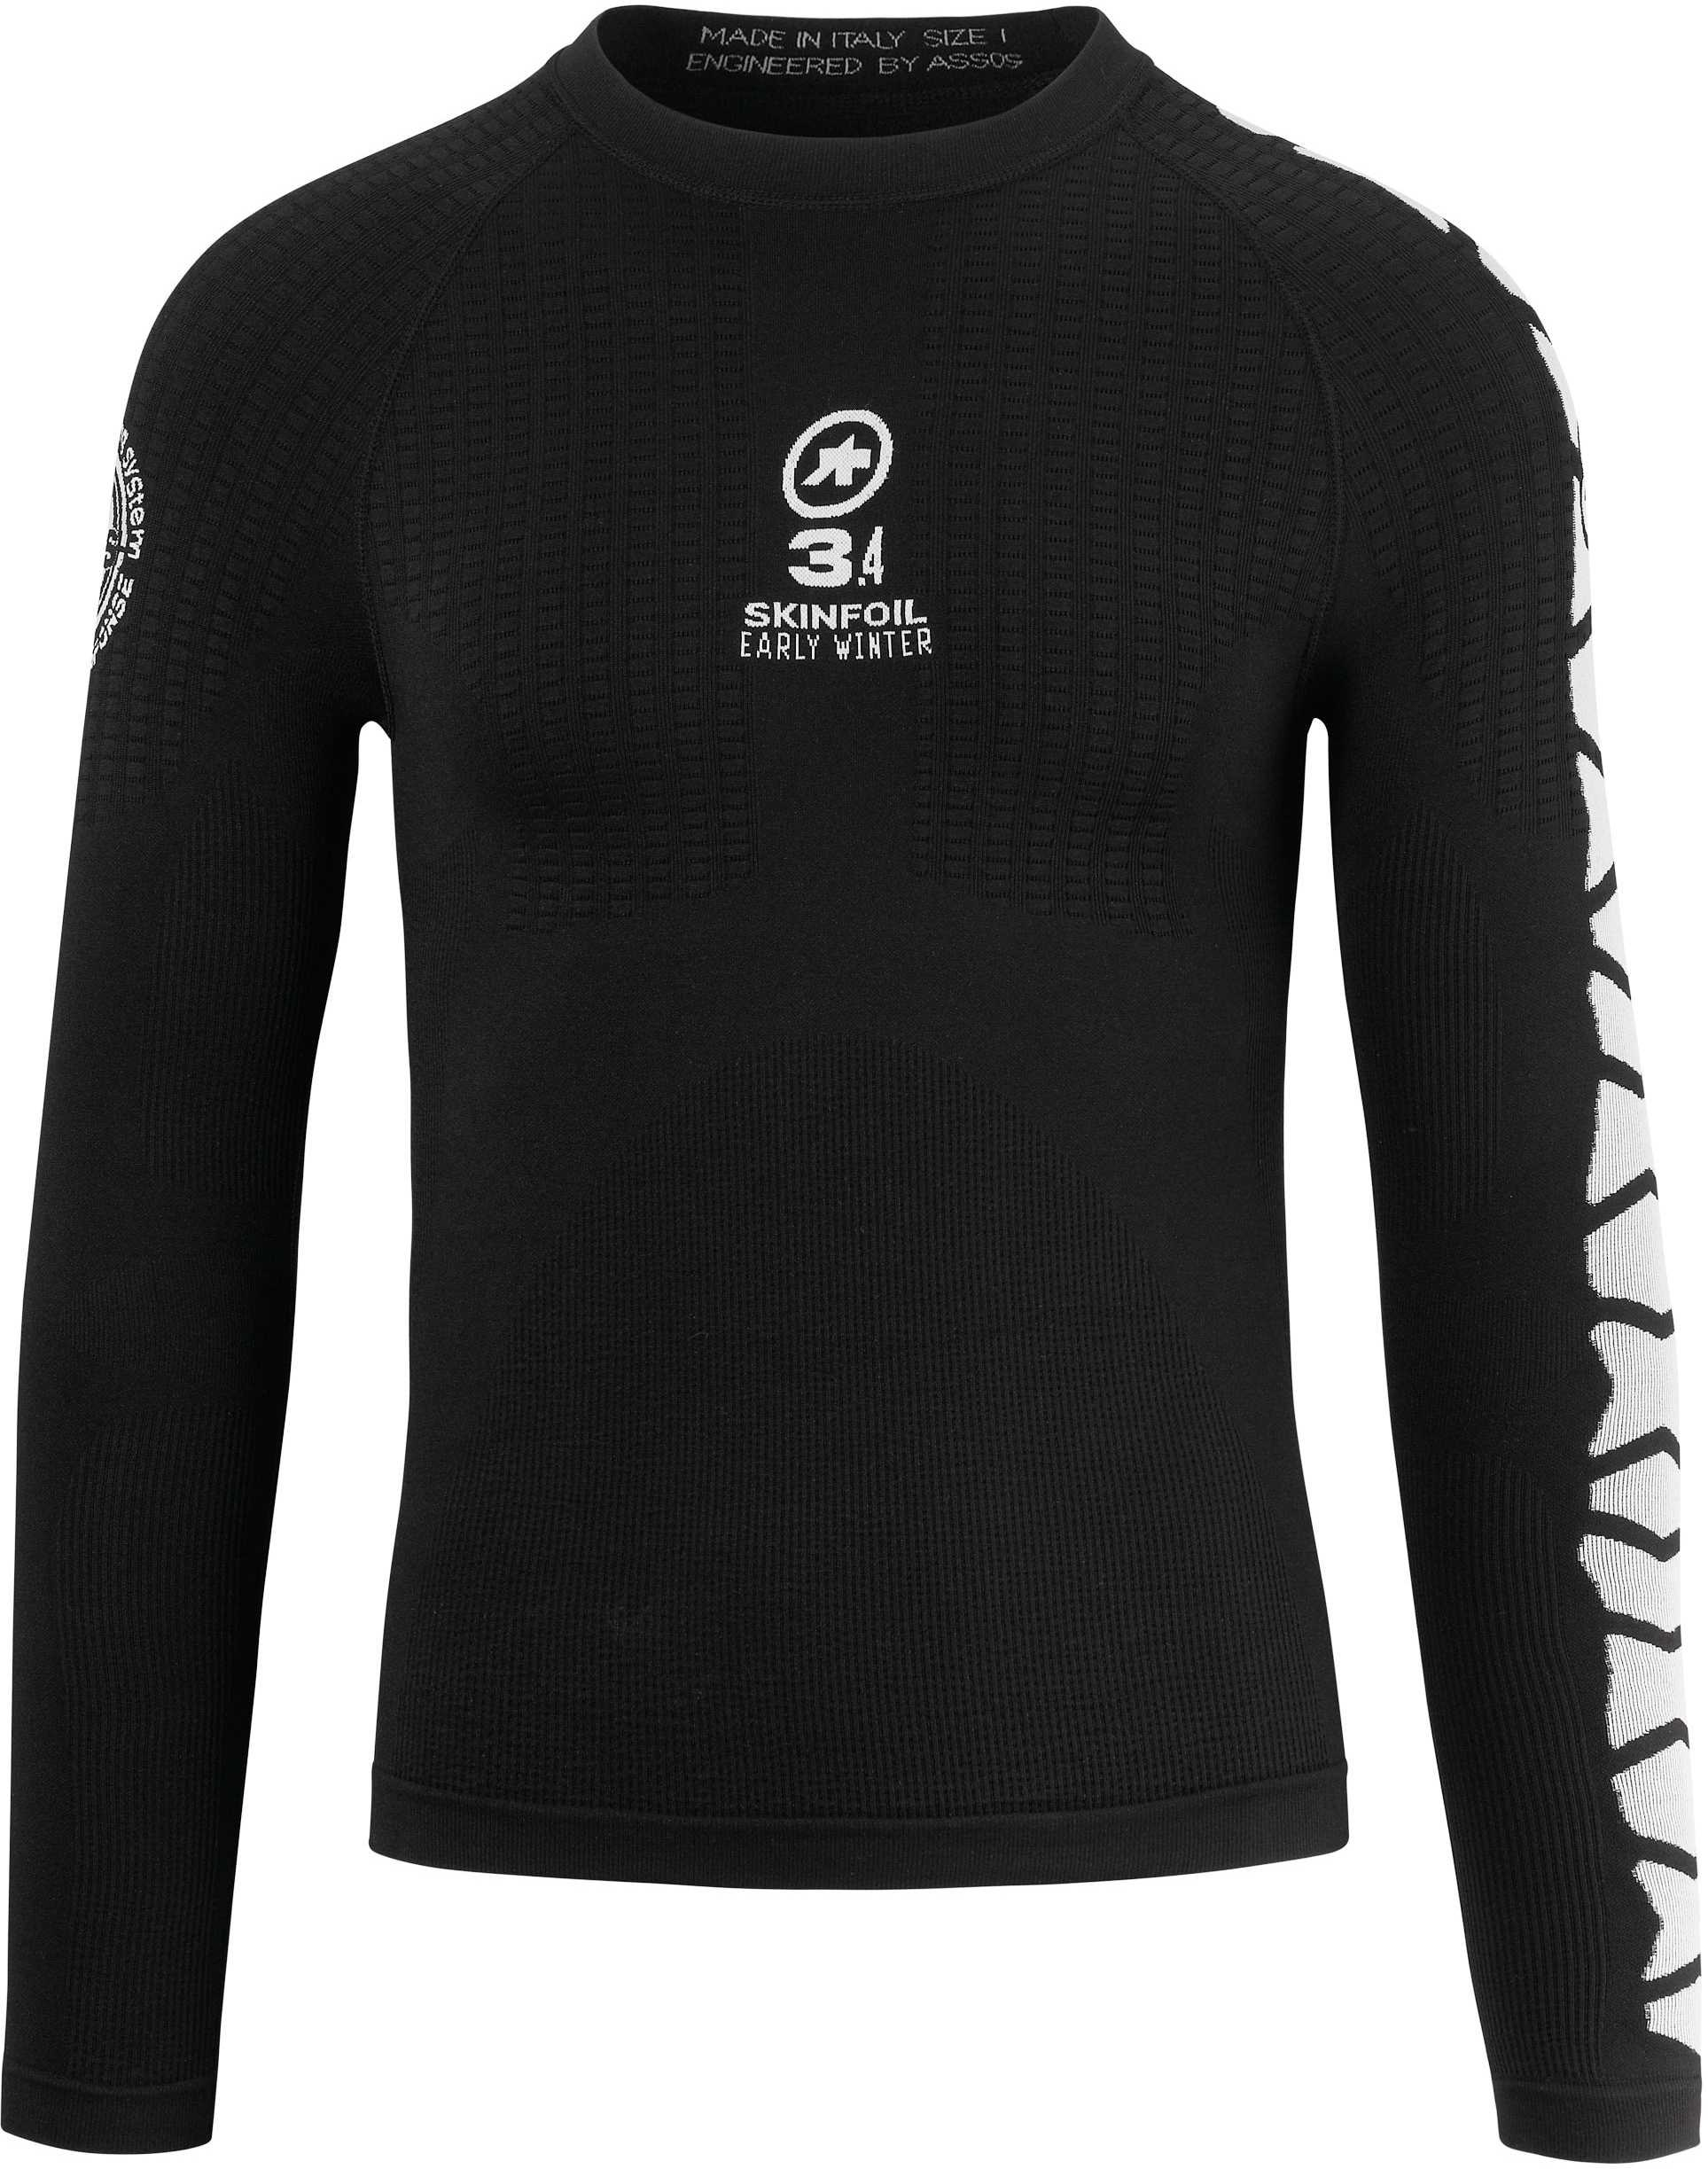 Undertøj Assos LS Skinfoil Earlywinter Evo7 sort | Base layers